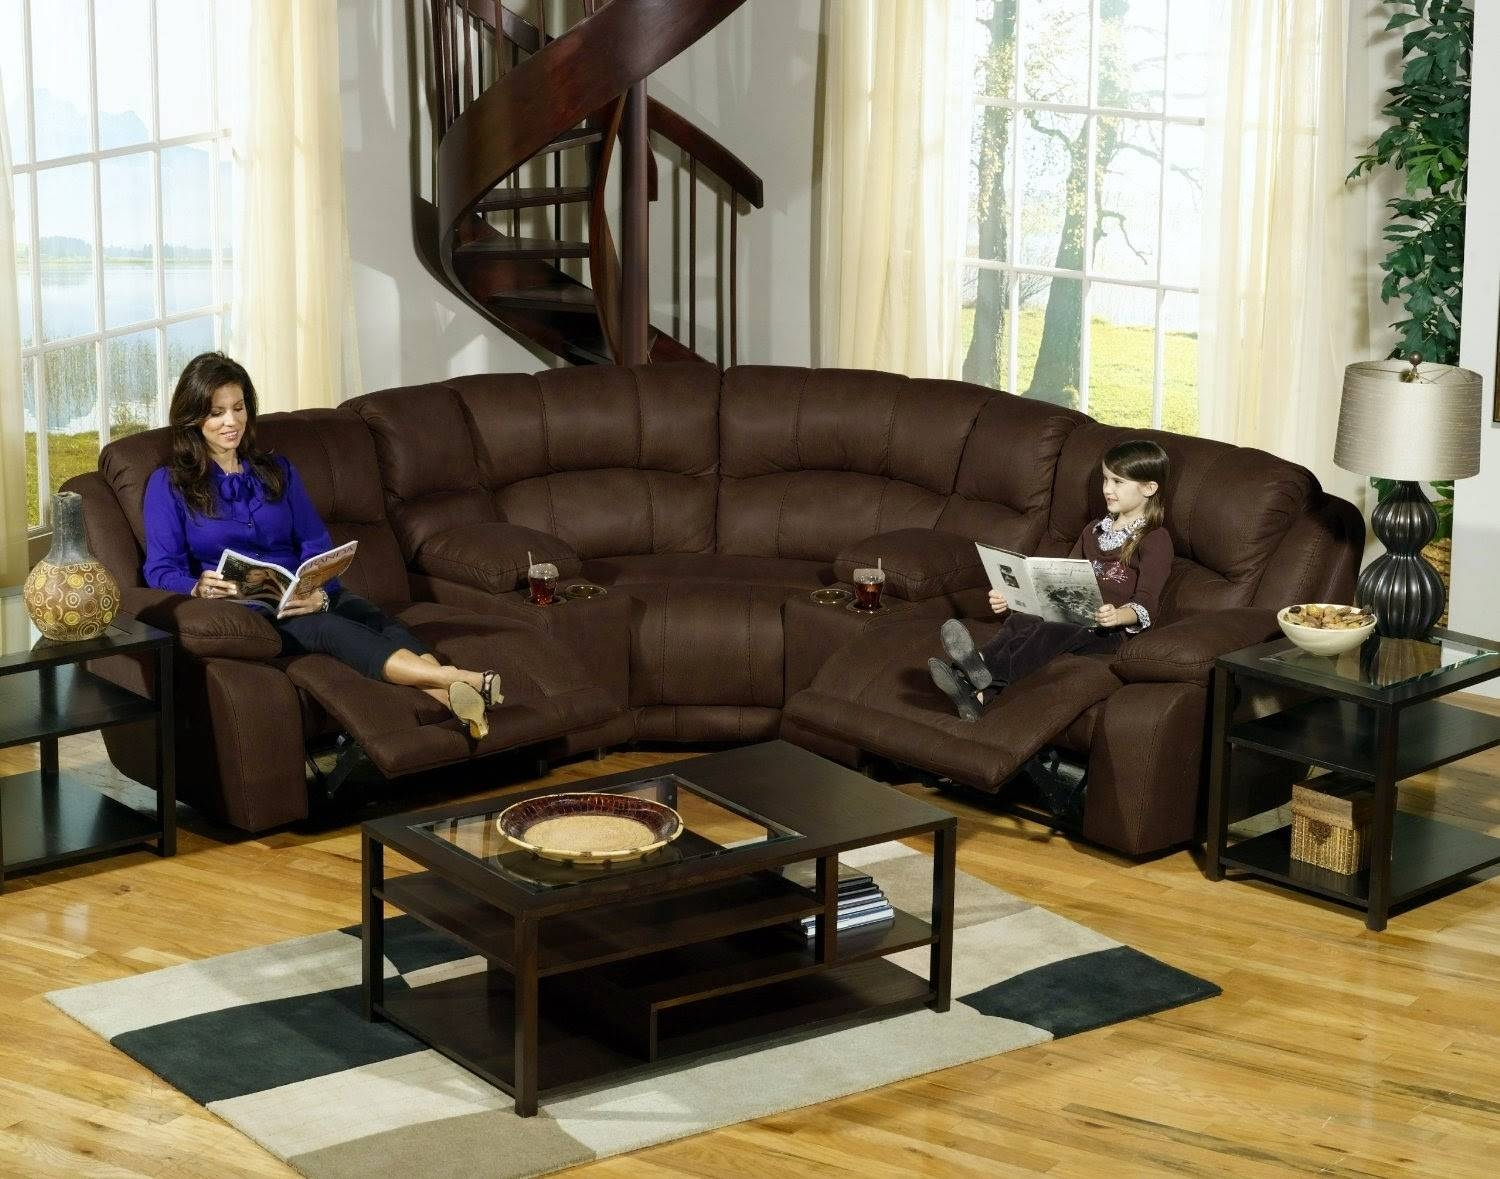 Furniture: Fantastic Sectional Couches With Recliners For Your inside Sectional Sofas With Electric Recliners (Image 9 of 30)